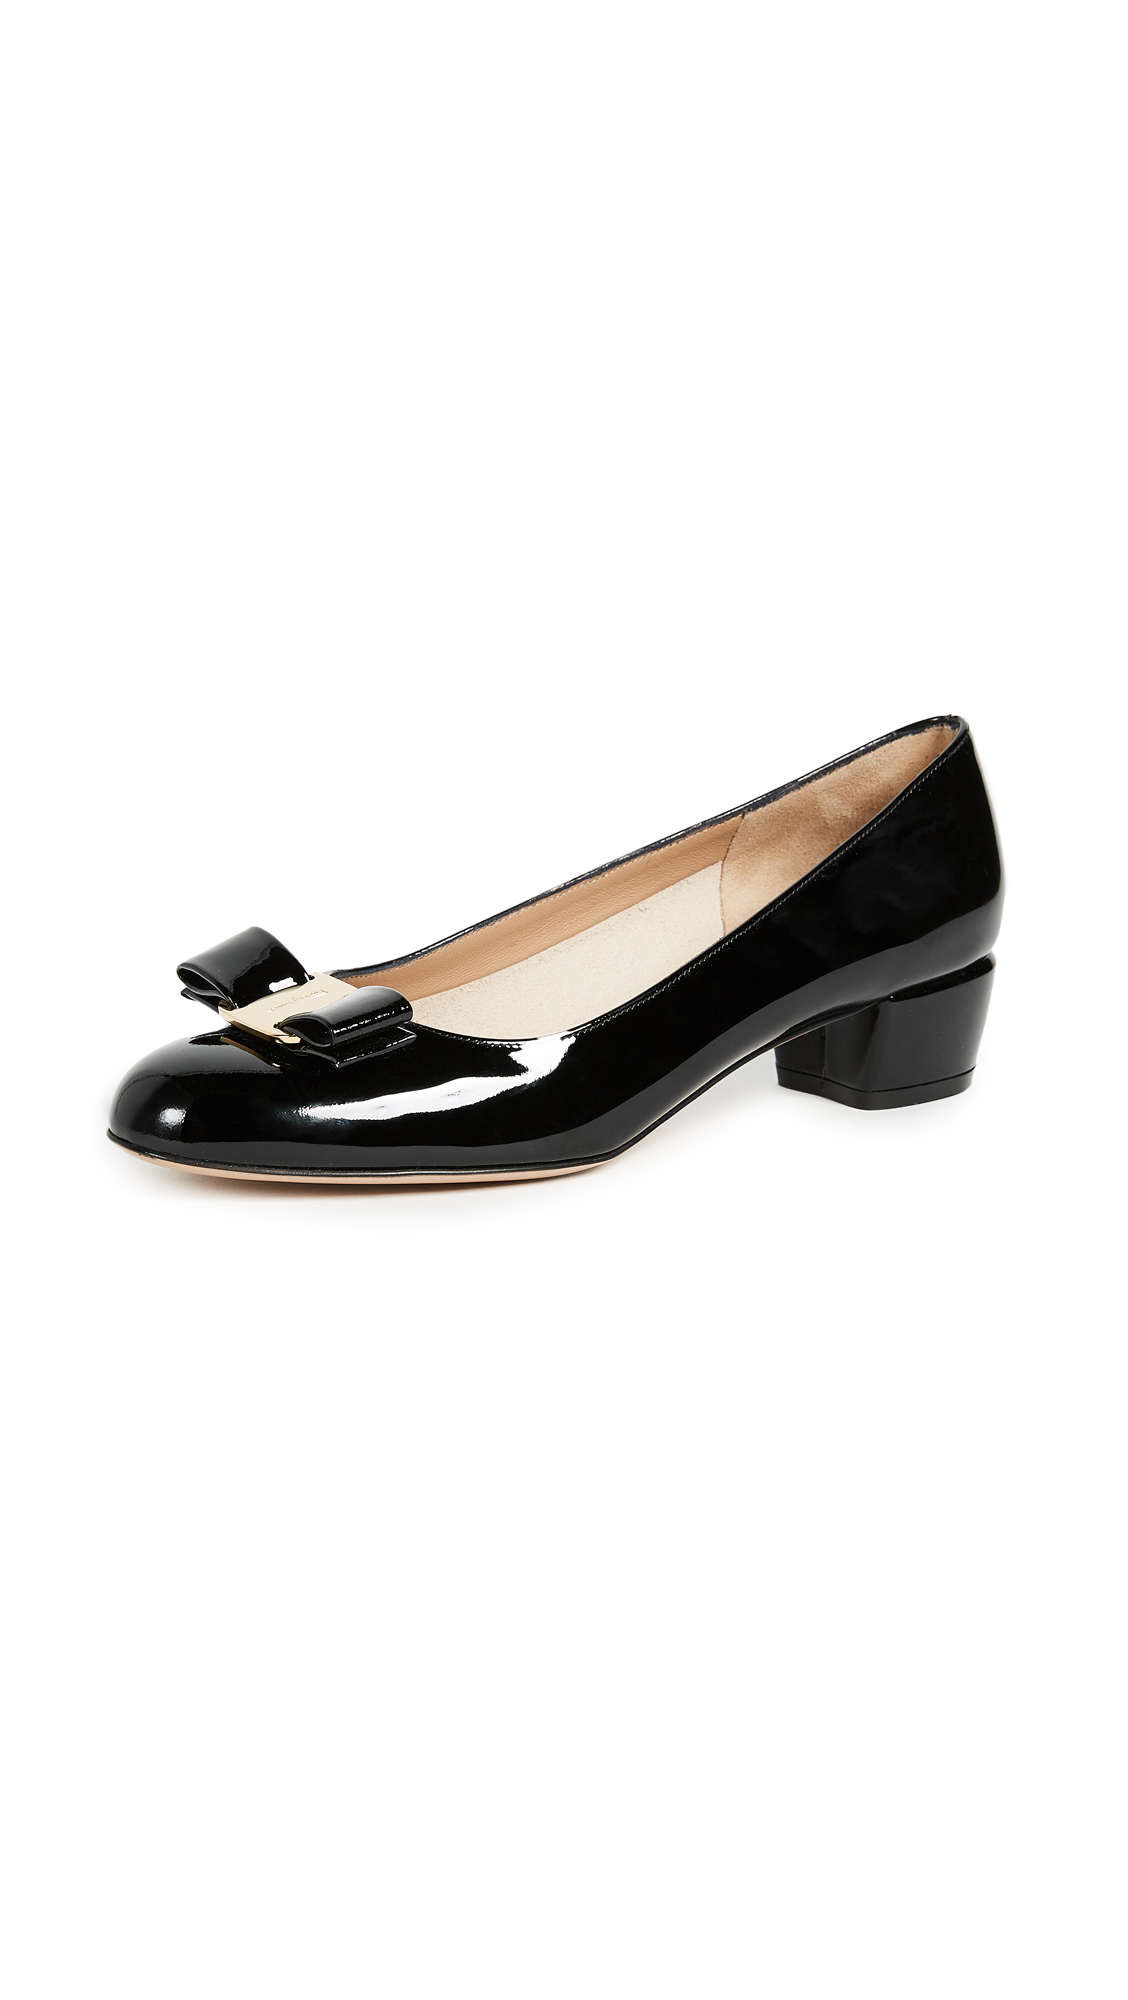 Salvatore Ferragamo Vara Low Heel Pumps - Nero